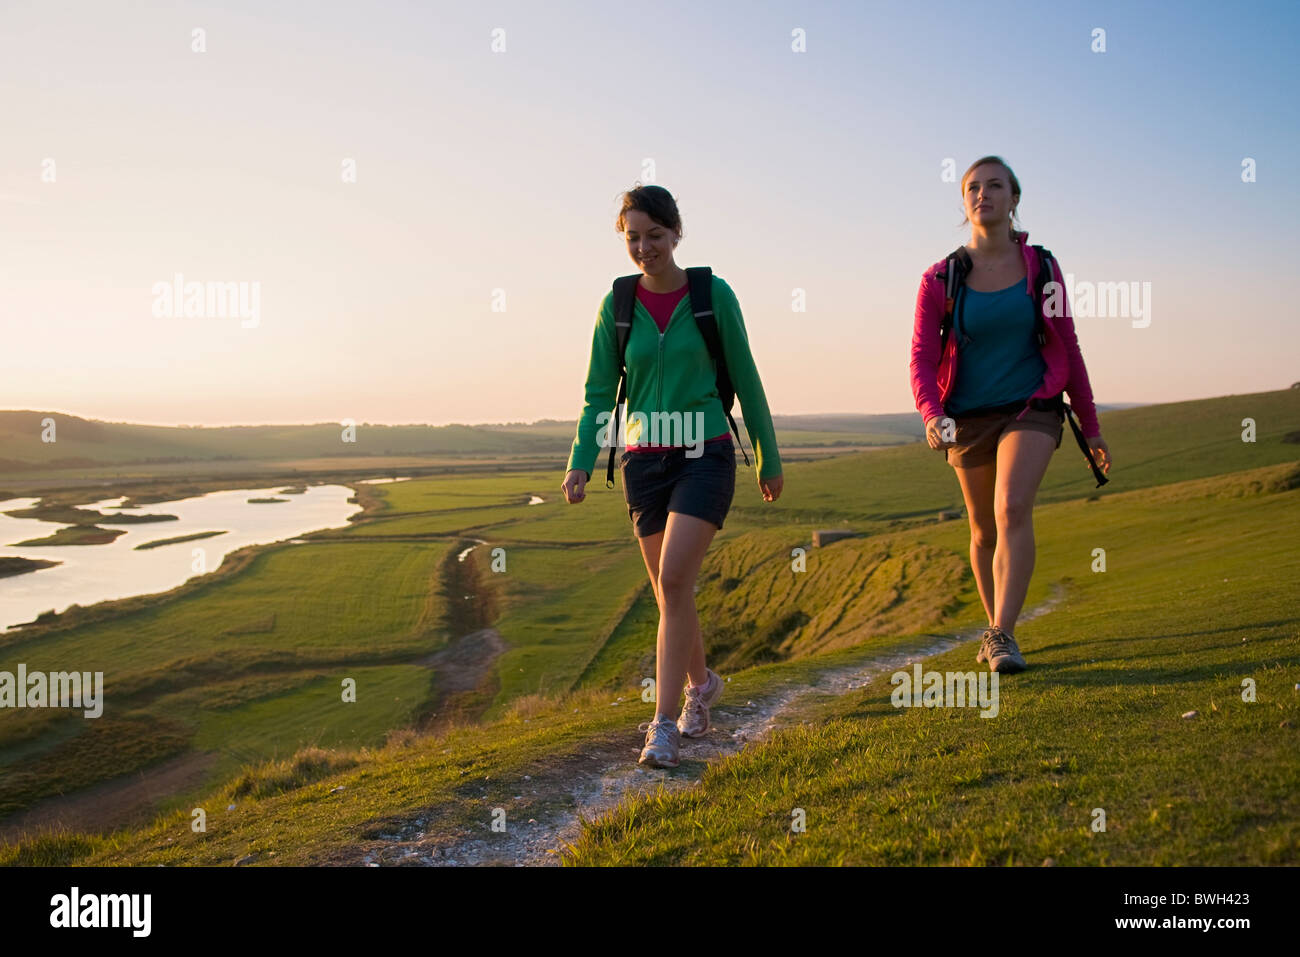 Hikers approach the end of their walk - Stock Image